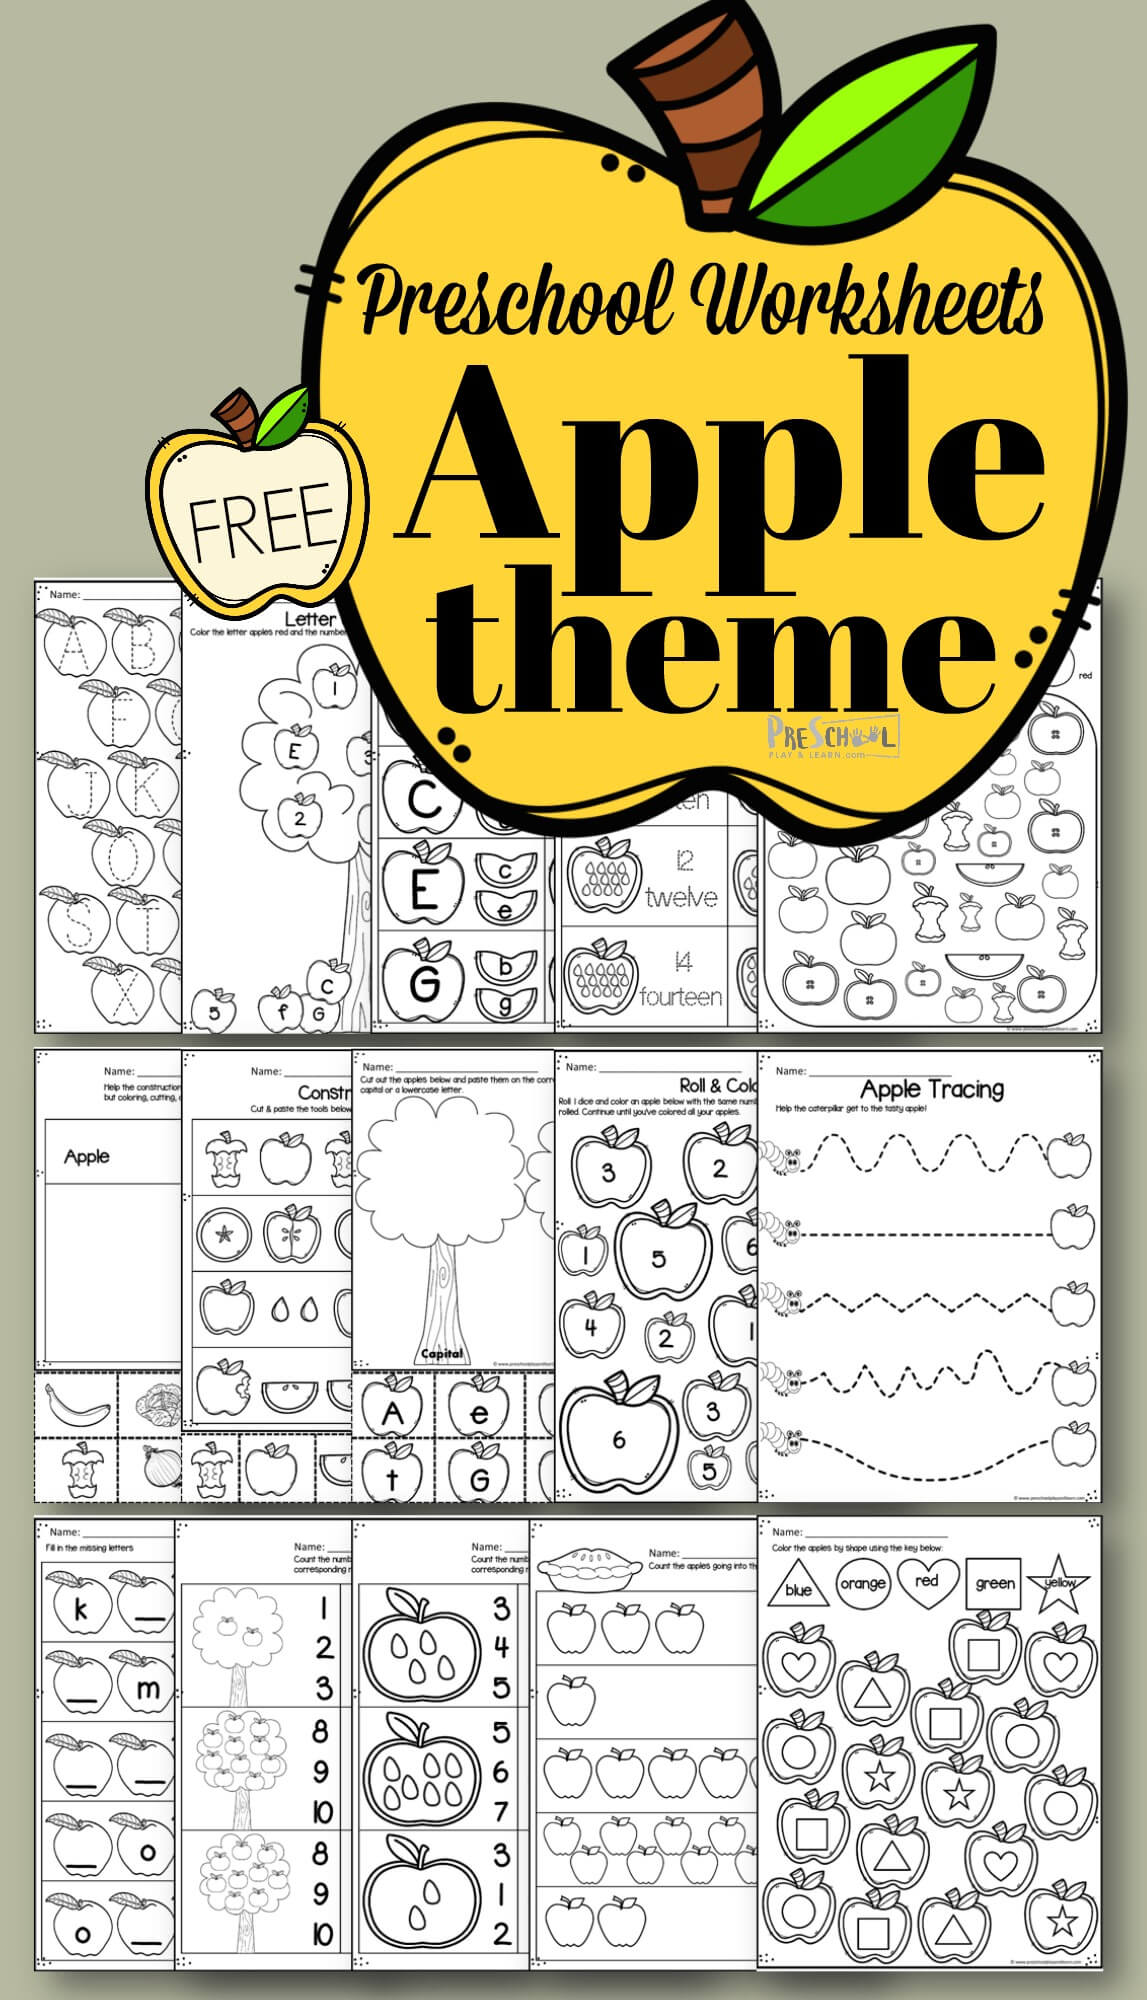 FREE Preschool Worksheets to help preschoolers, prek, and kindergarten counting, alphabet letters, patterns, shapes, colors, and more #freeworksheets #preschoolworksksheets #worksheetsforkids